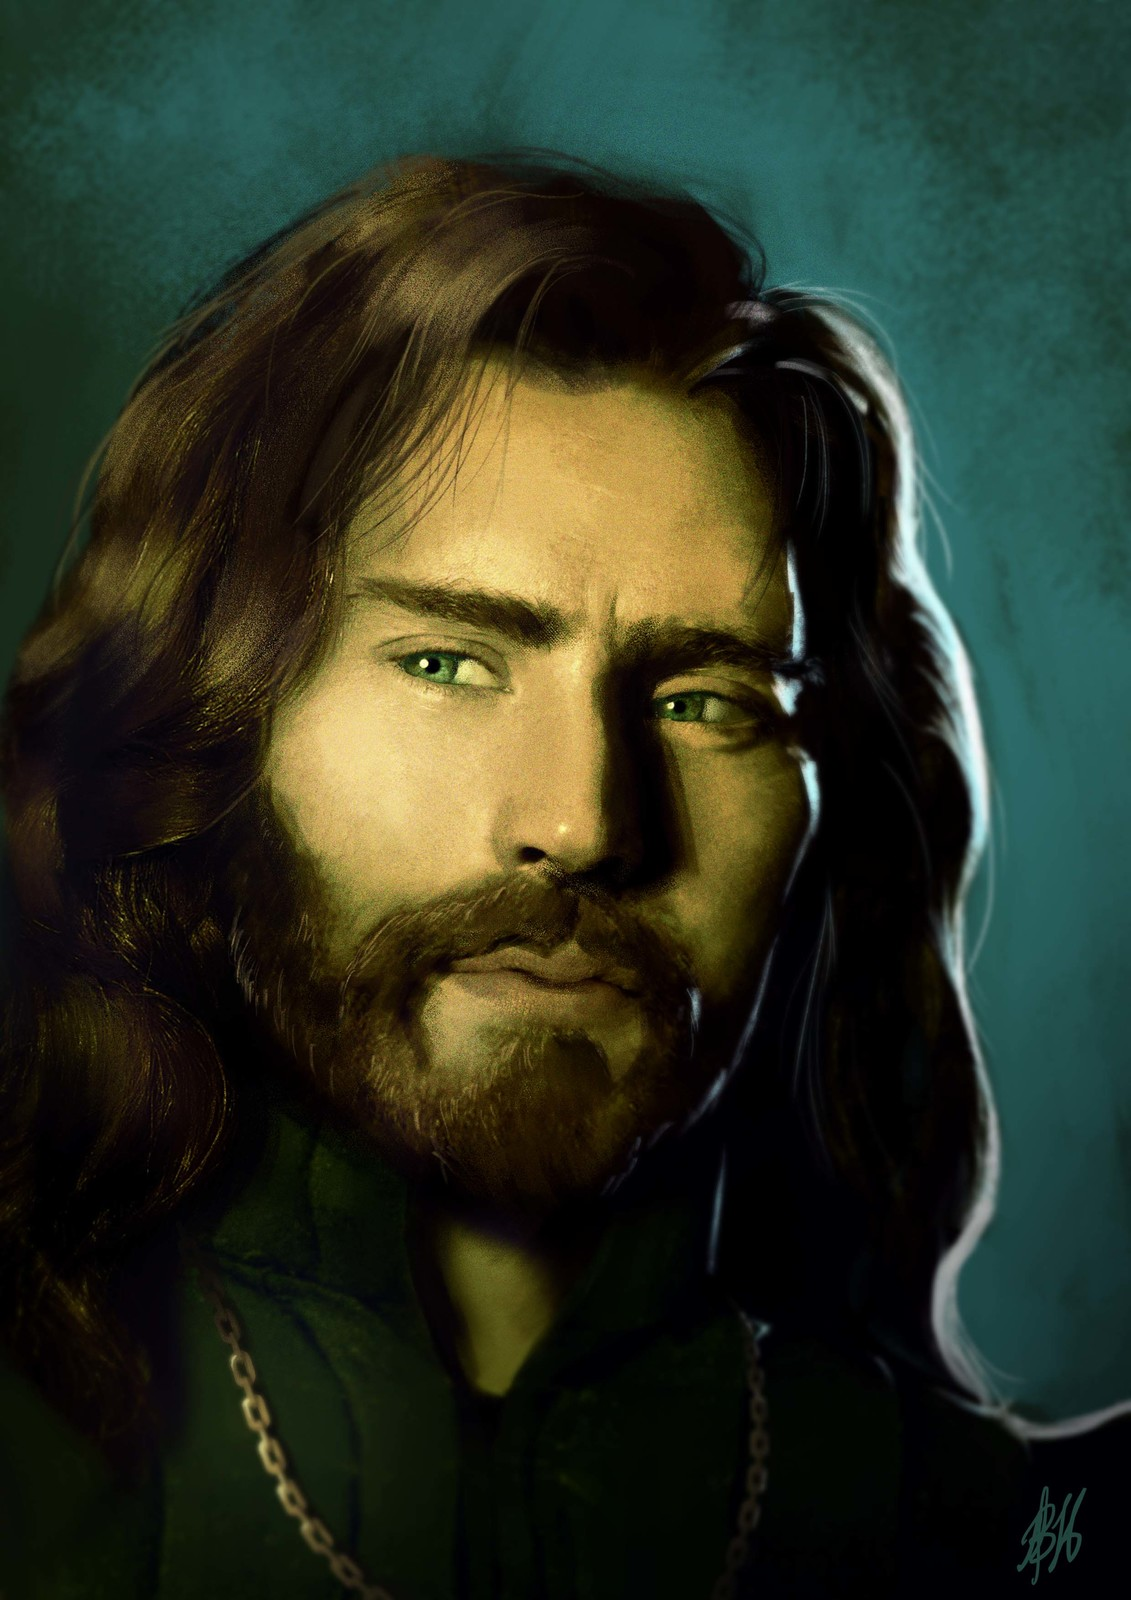 Bartholomew - half-elven cleric of a deity of magic, death and mysteries. Like to hide his elven ancestry.